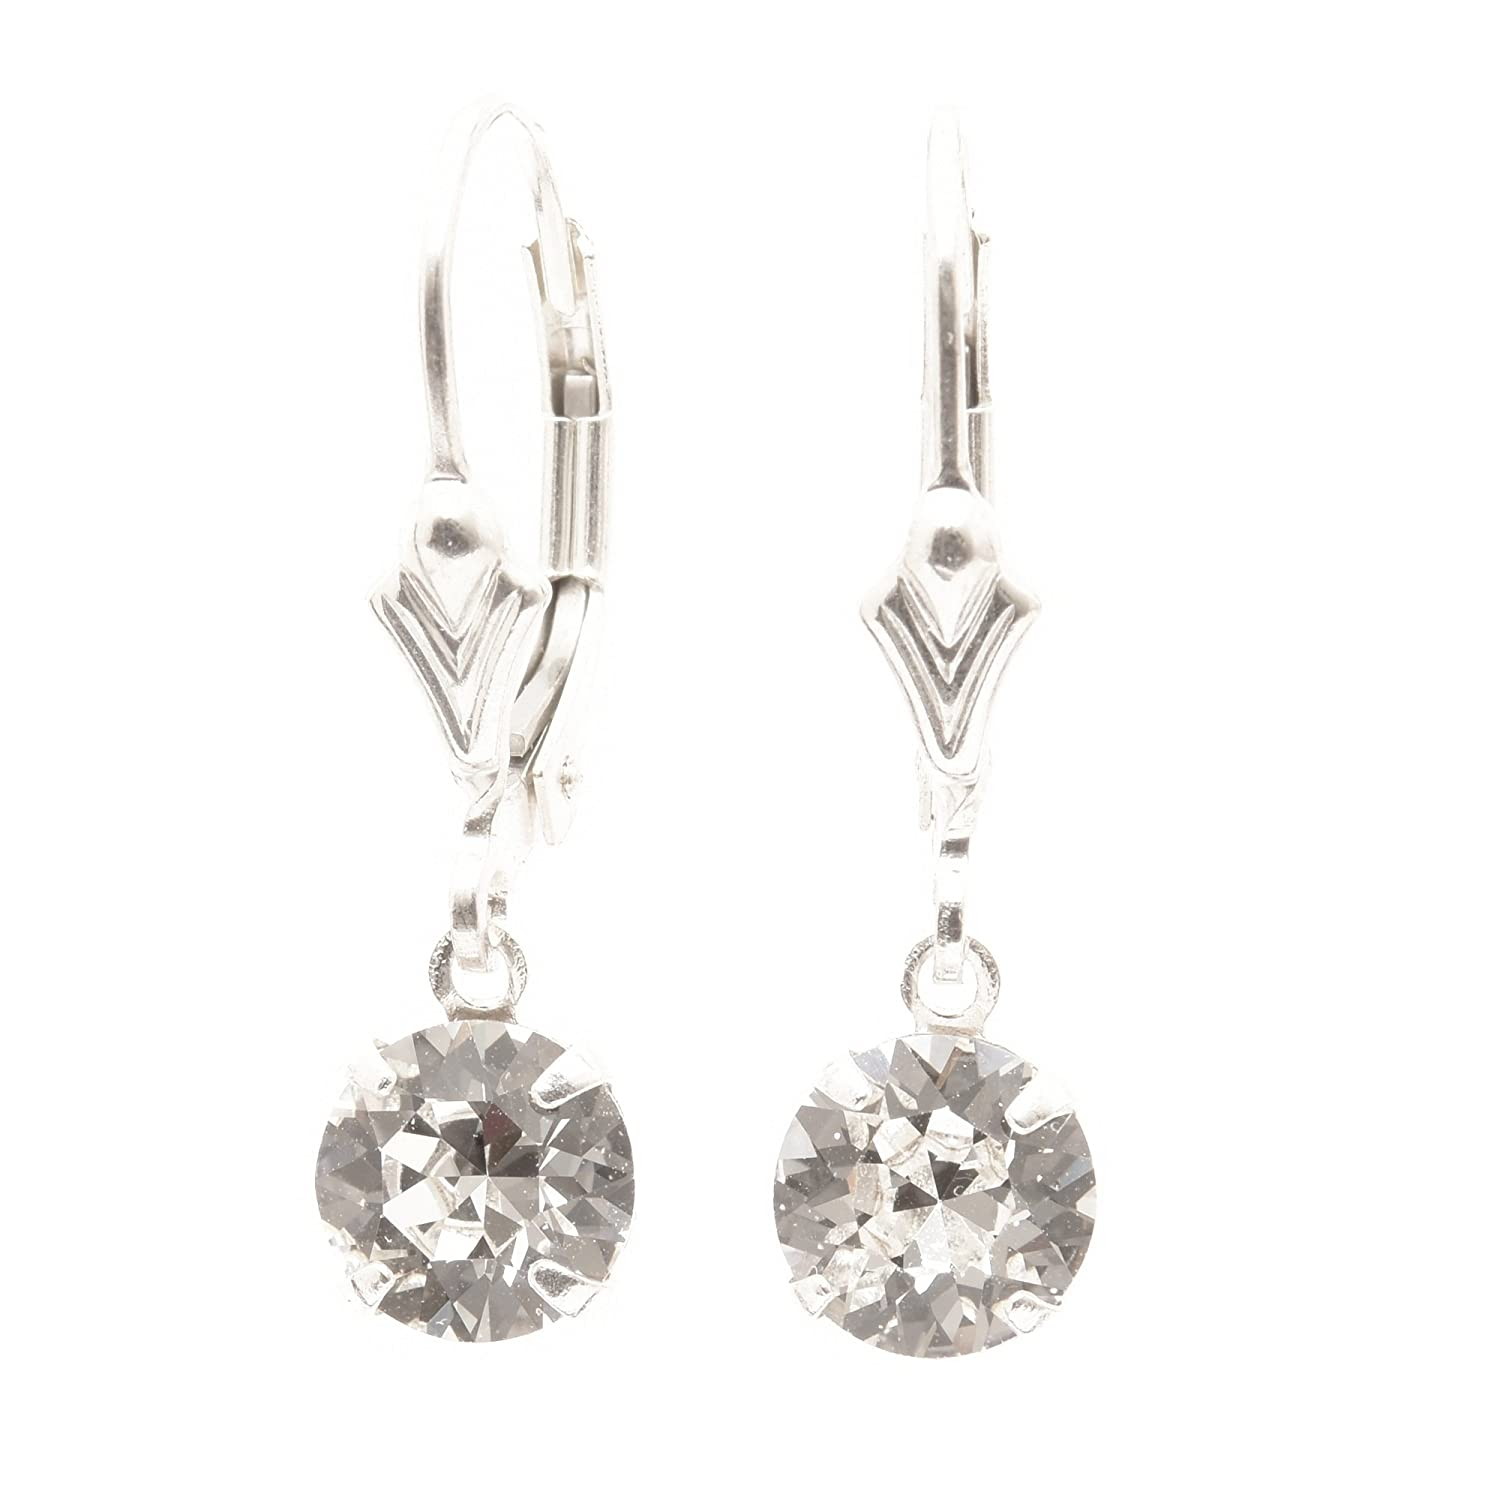 pewterhooter 925 Sterling Silver lever back earrings handmade with Diamond  White crystal from SWAROVSKI®. London box.  pewterhooter  Amazon.co.uk   Jewellery ae28da29a